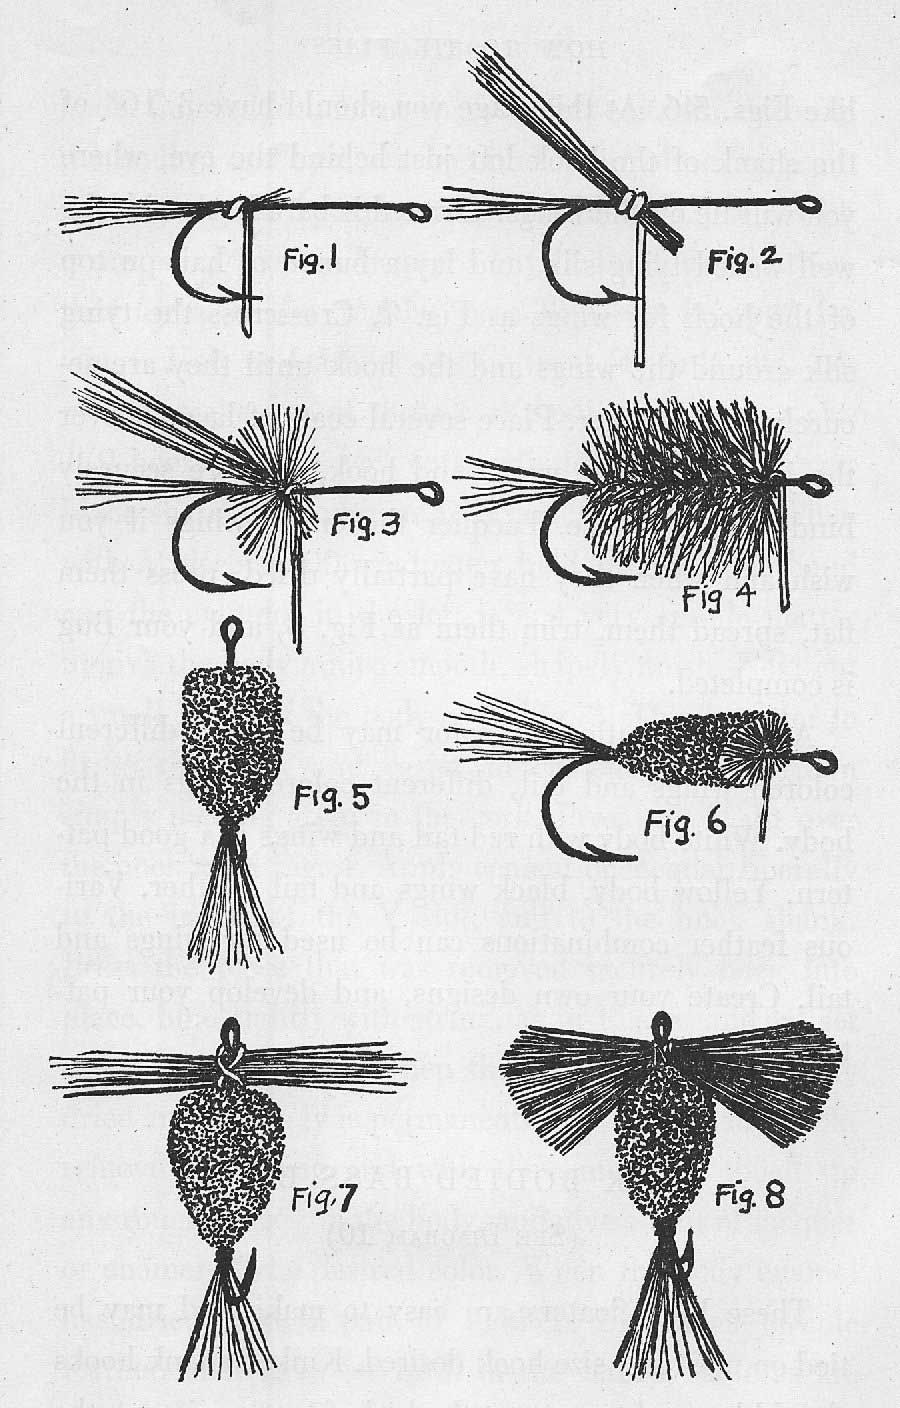 hight resolution of page sized diagram showing drawings of bass bug construction